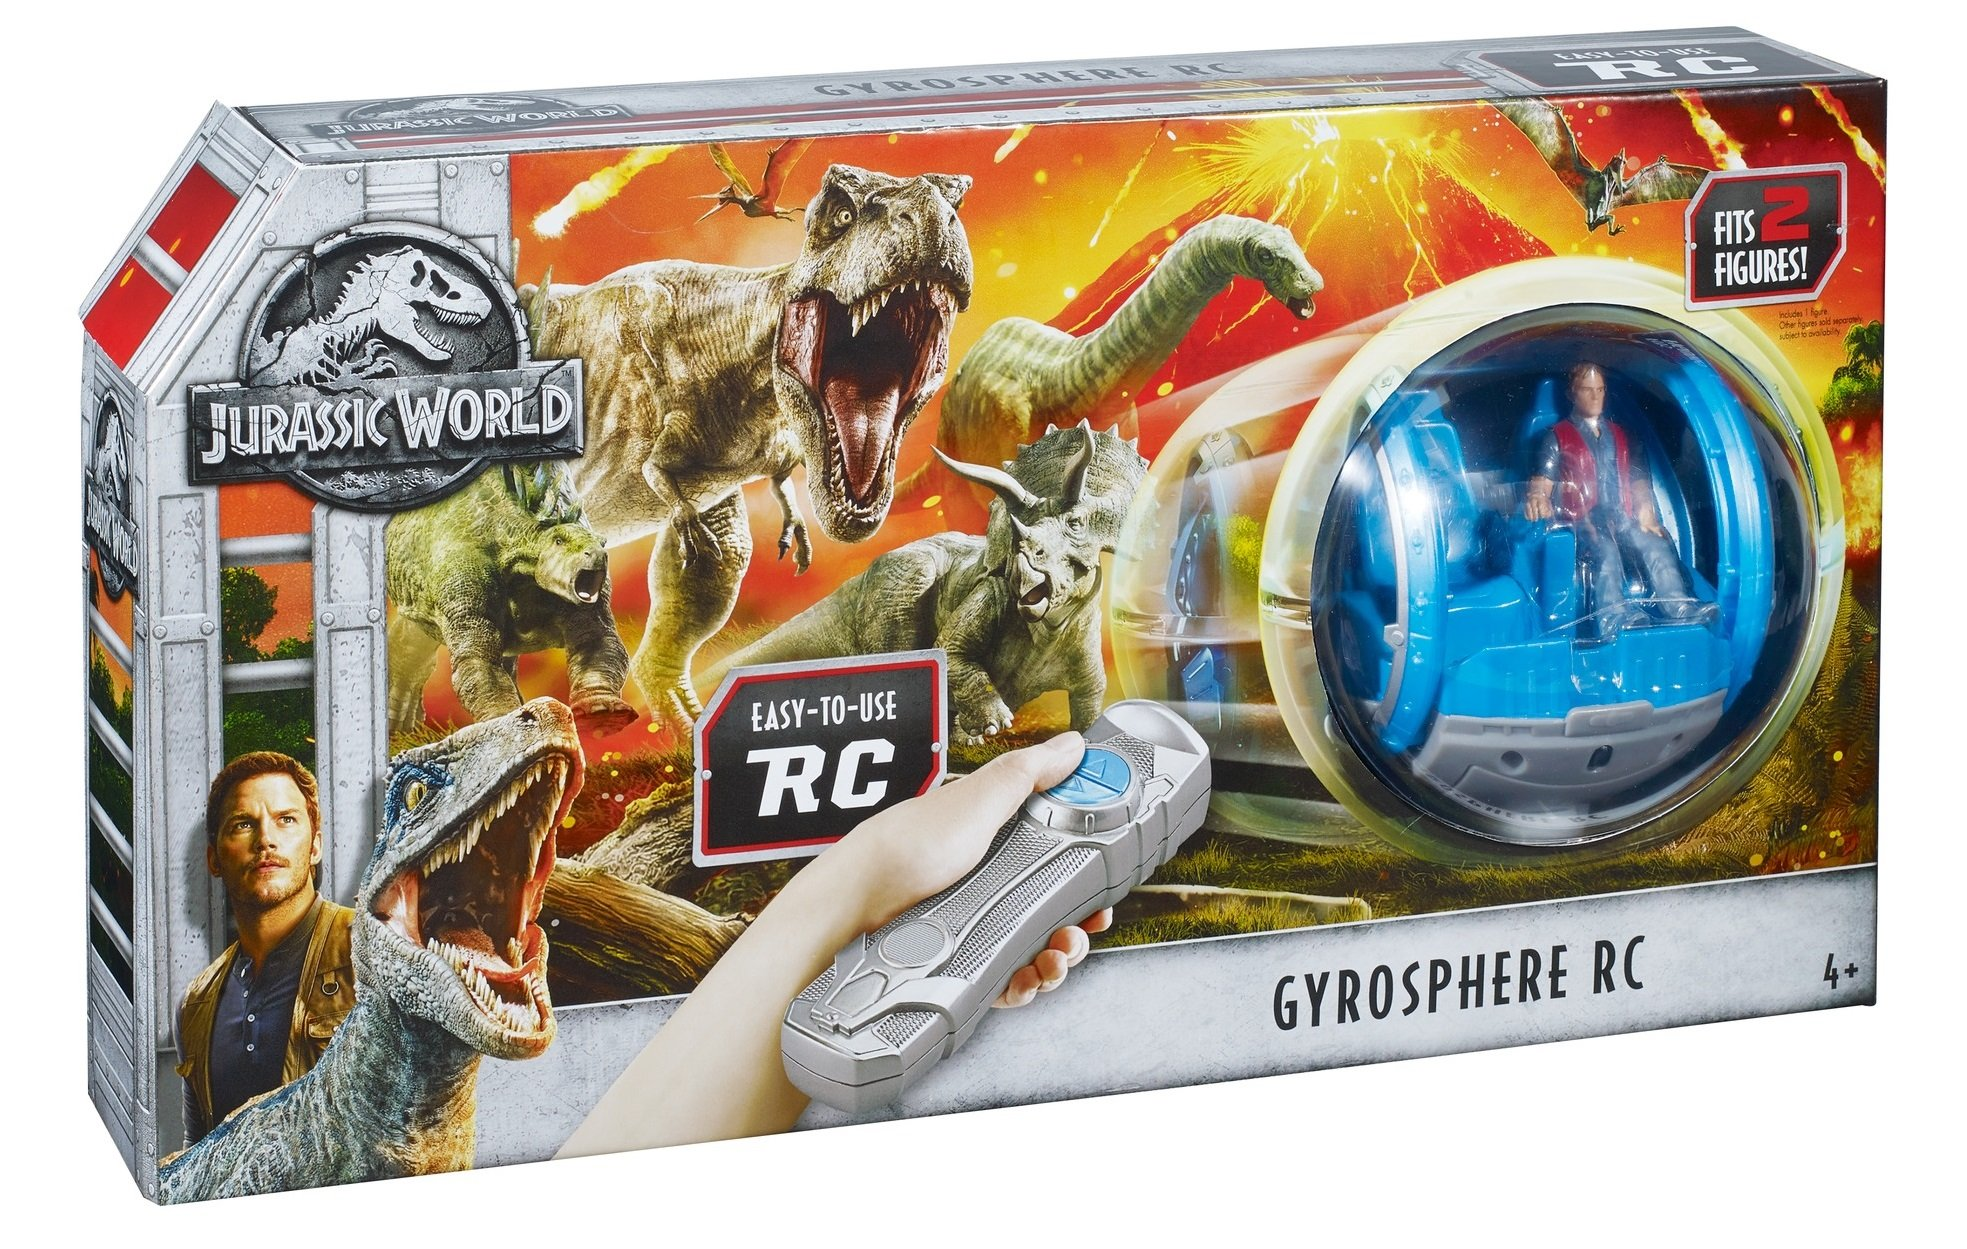 Jurassic World Gyrosphere RC Vehicle by Jurassic World Toys (Image #9)